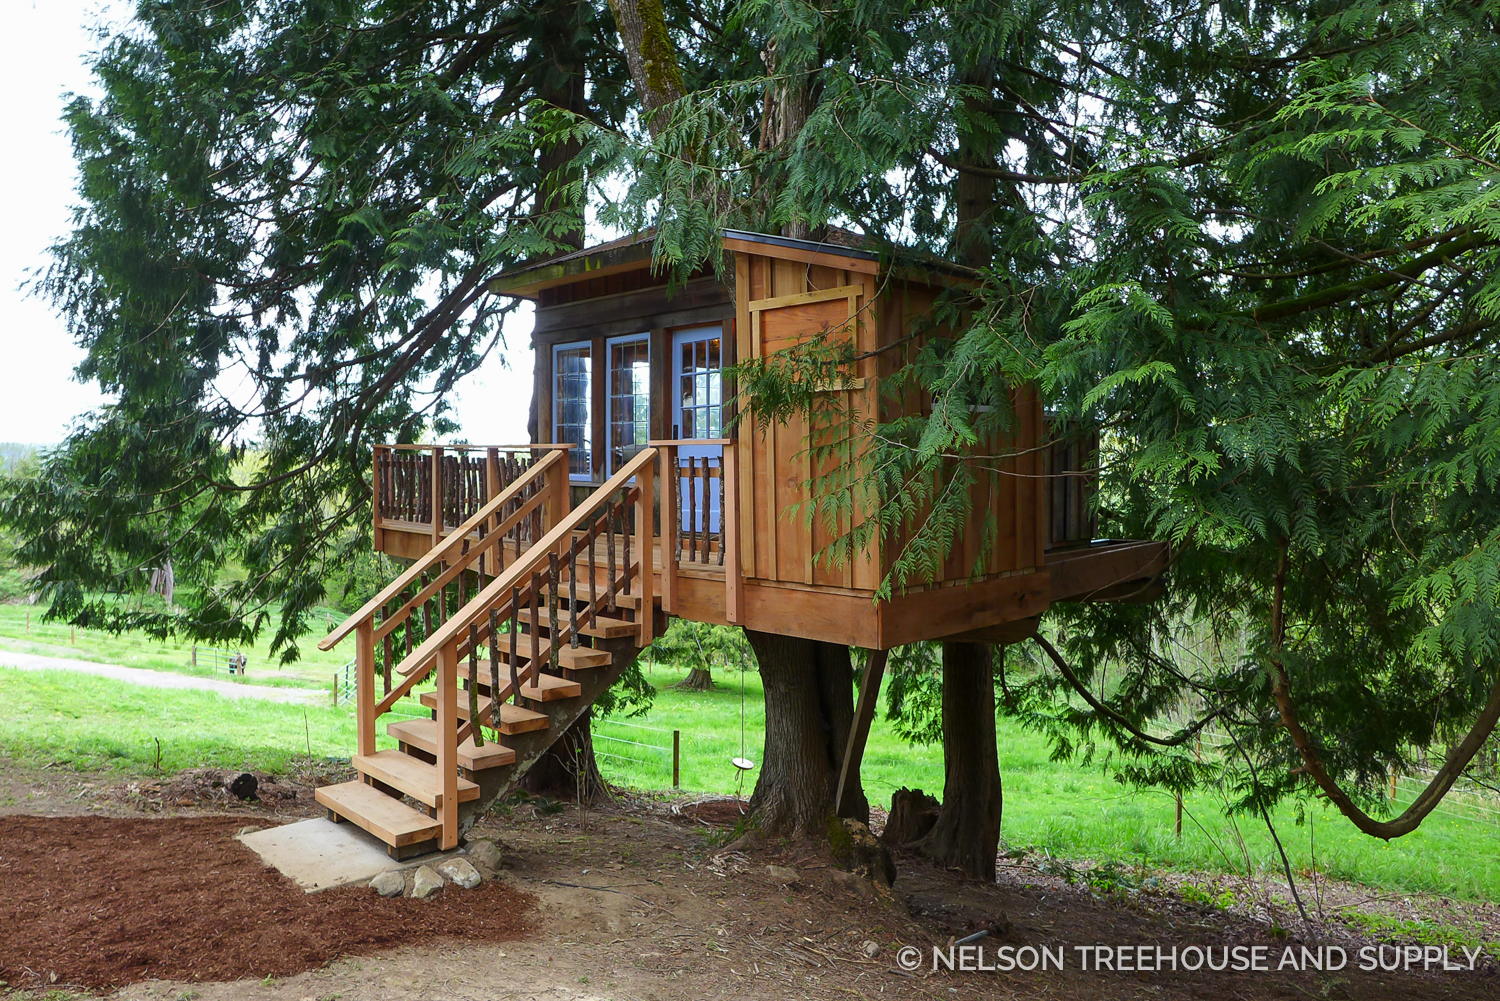 Updating the treehouse with pressure-treated wood, metal flashing, and sturdy railings will keep this treehouse safe and strong for years to come.